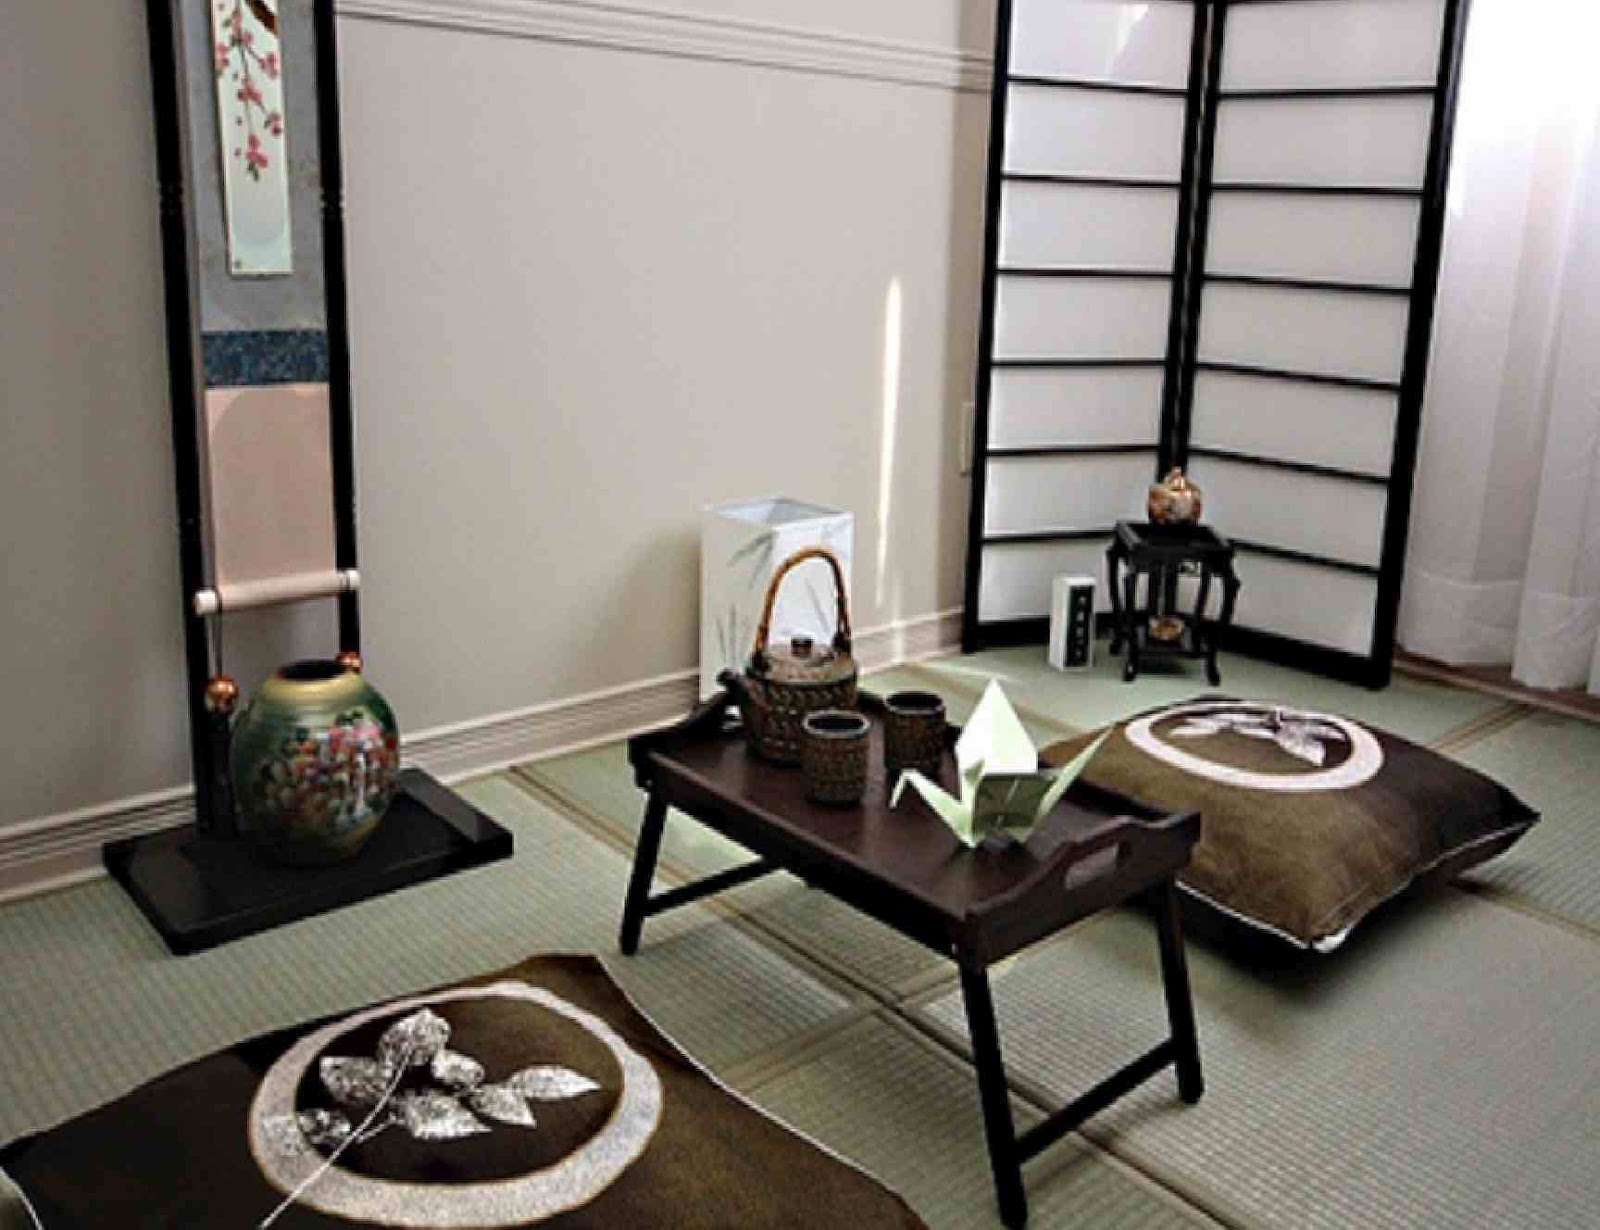 Japanese interior design interior home design - Japanese home decor ...